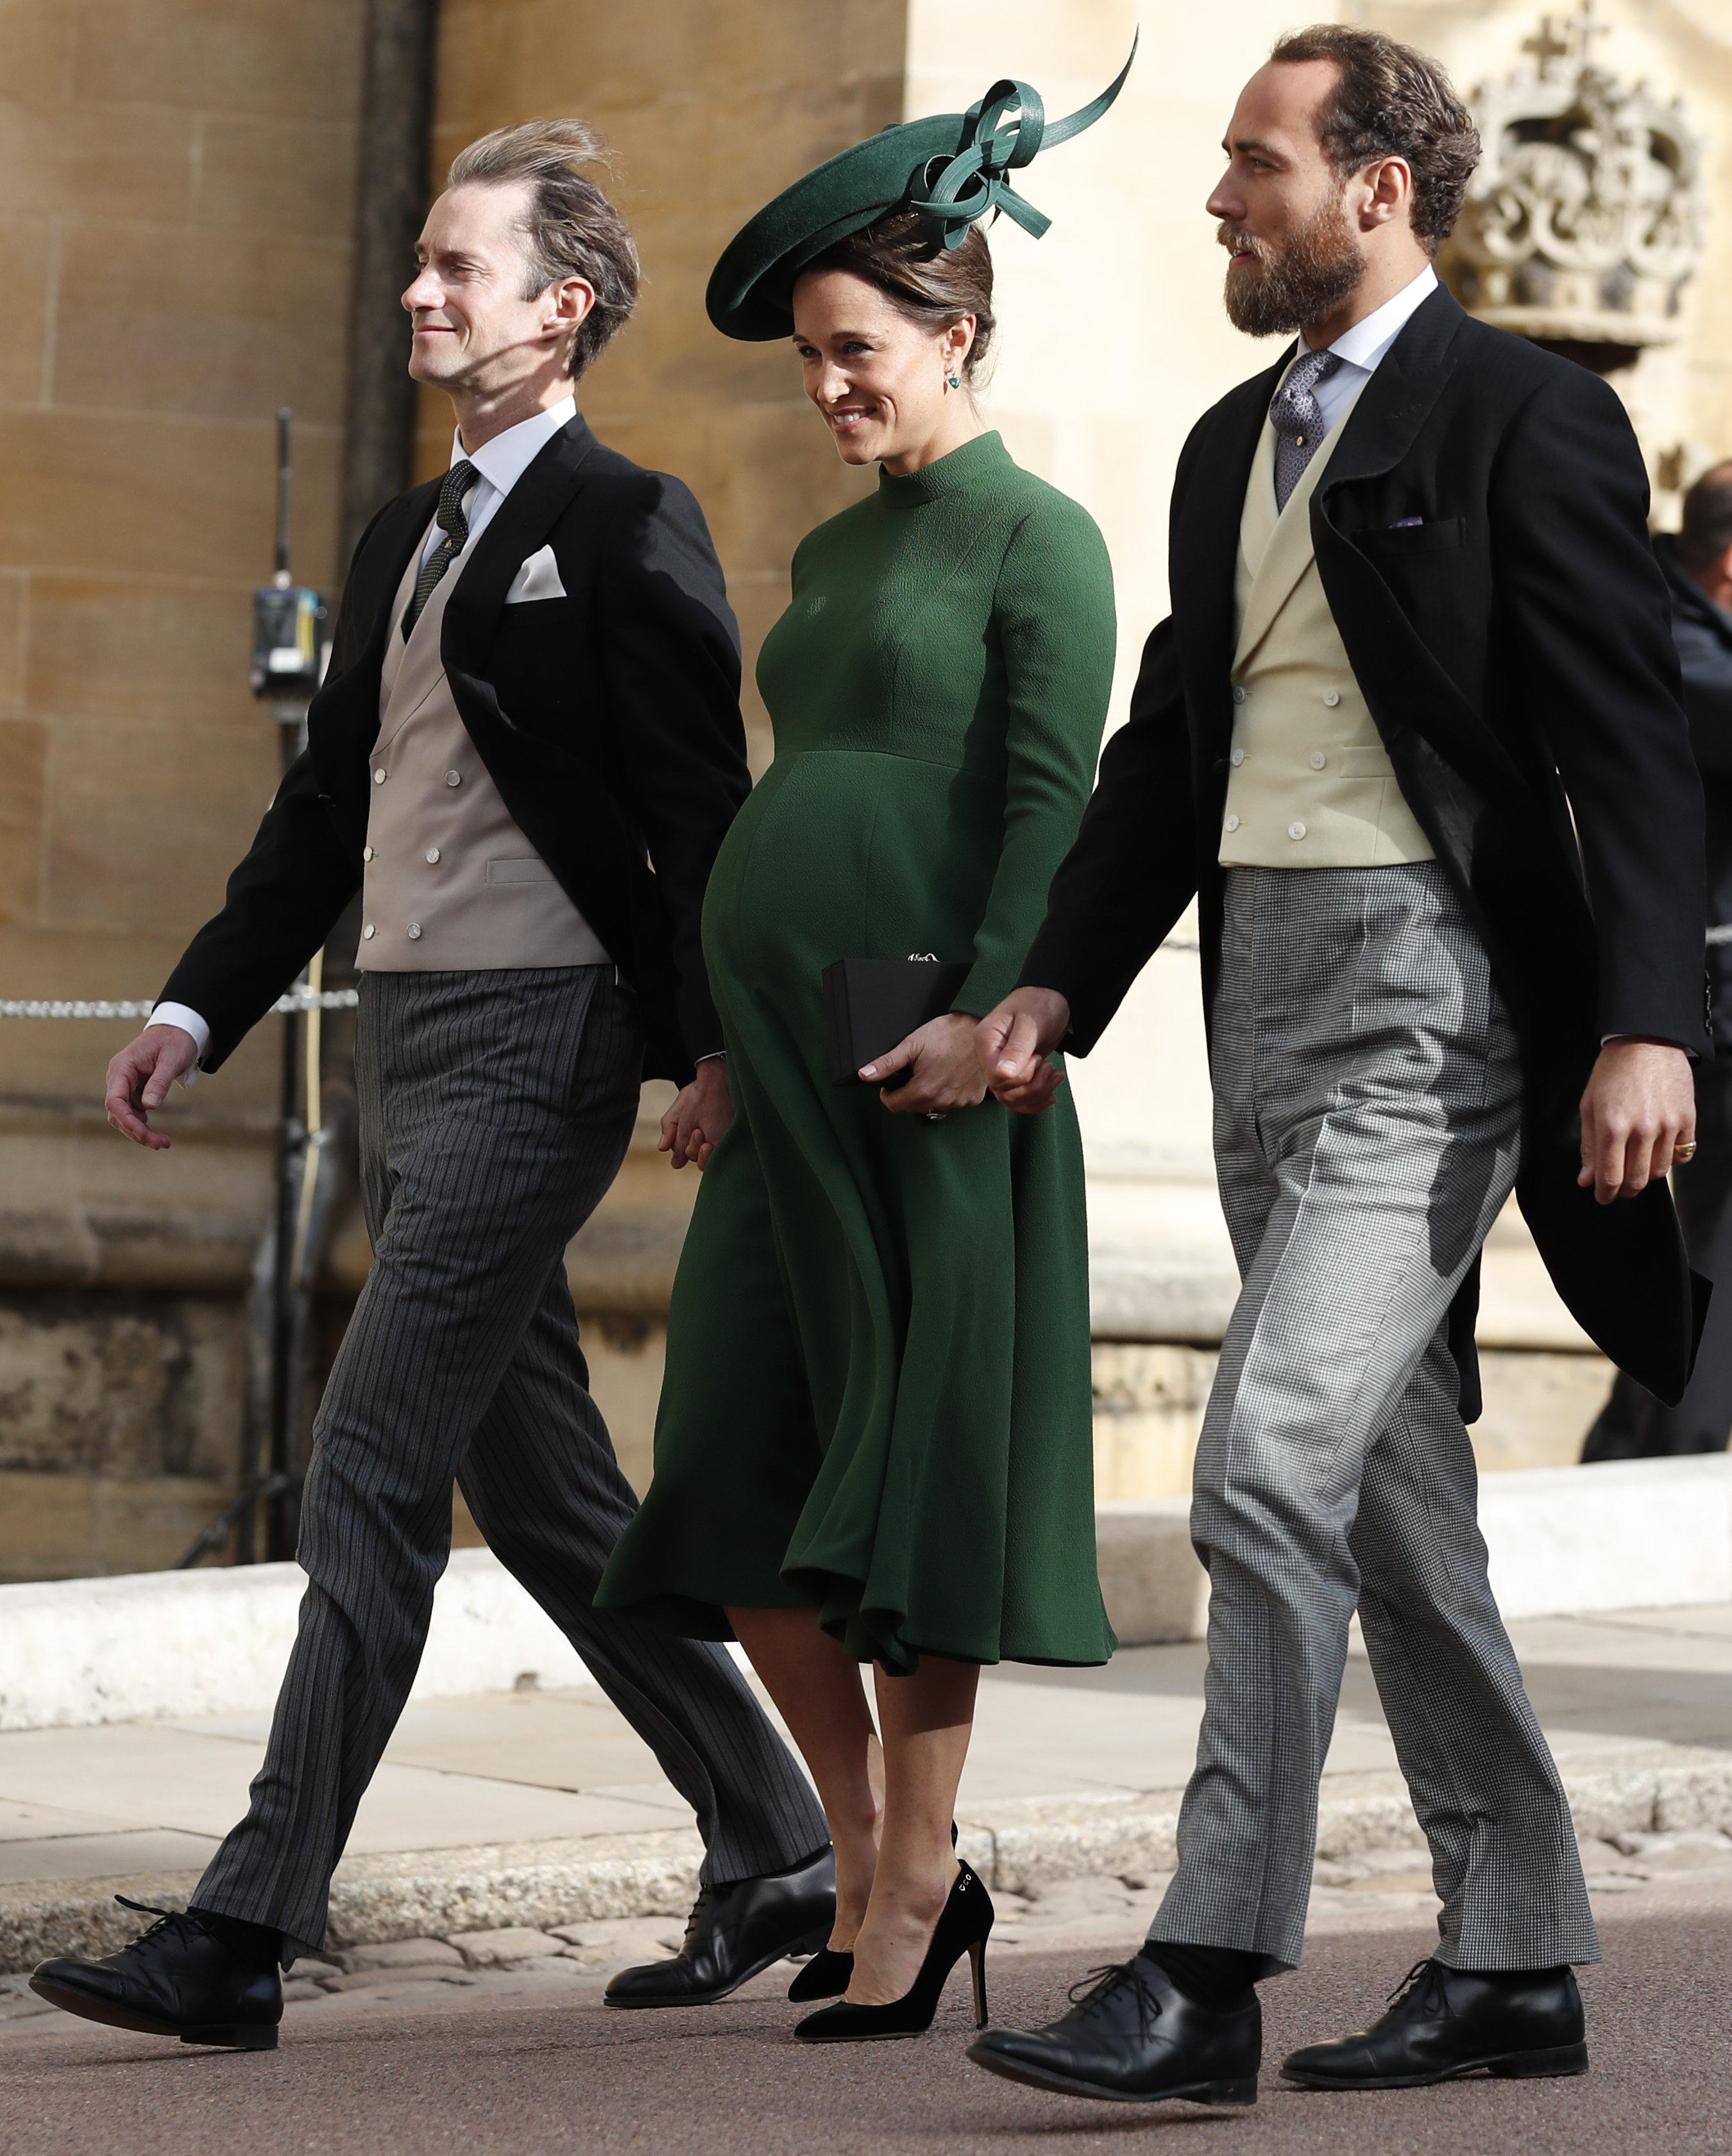 James Middleton, Pippa Middleton et James Matthews arrivent pour le mariage de la princesse Eugénie de York : Getty Images